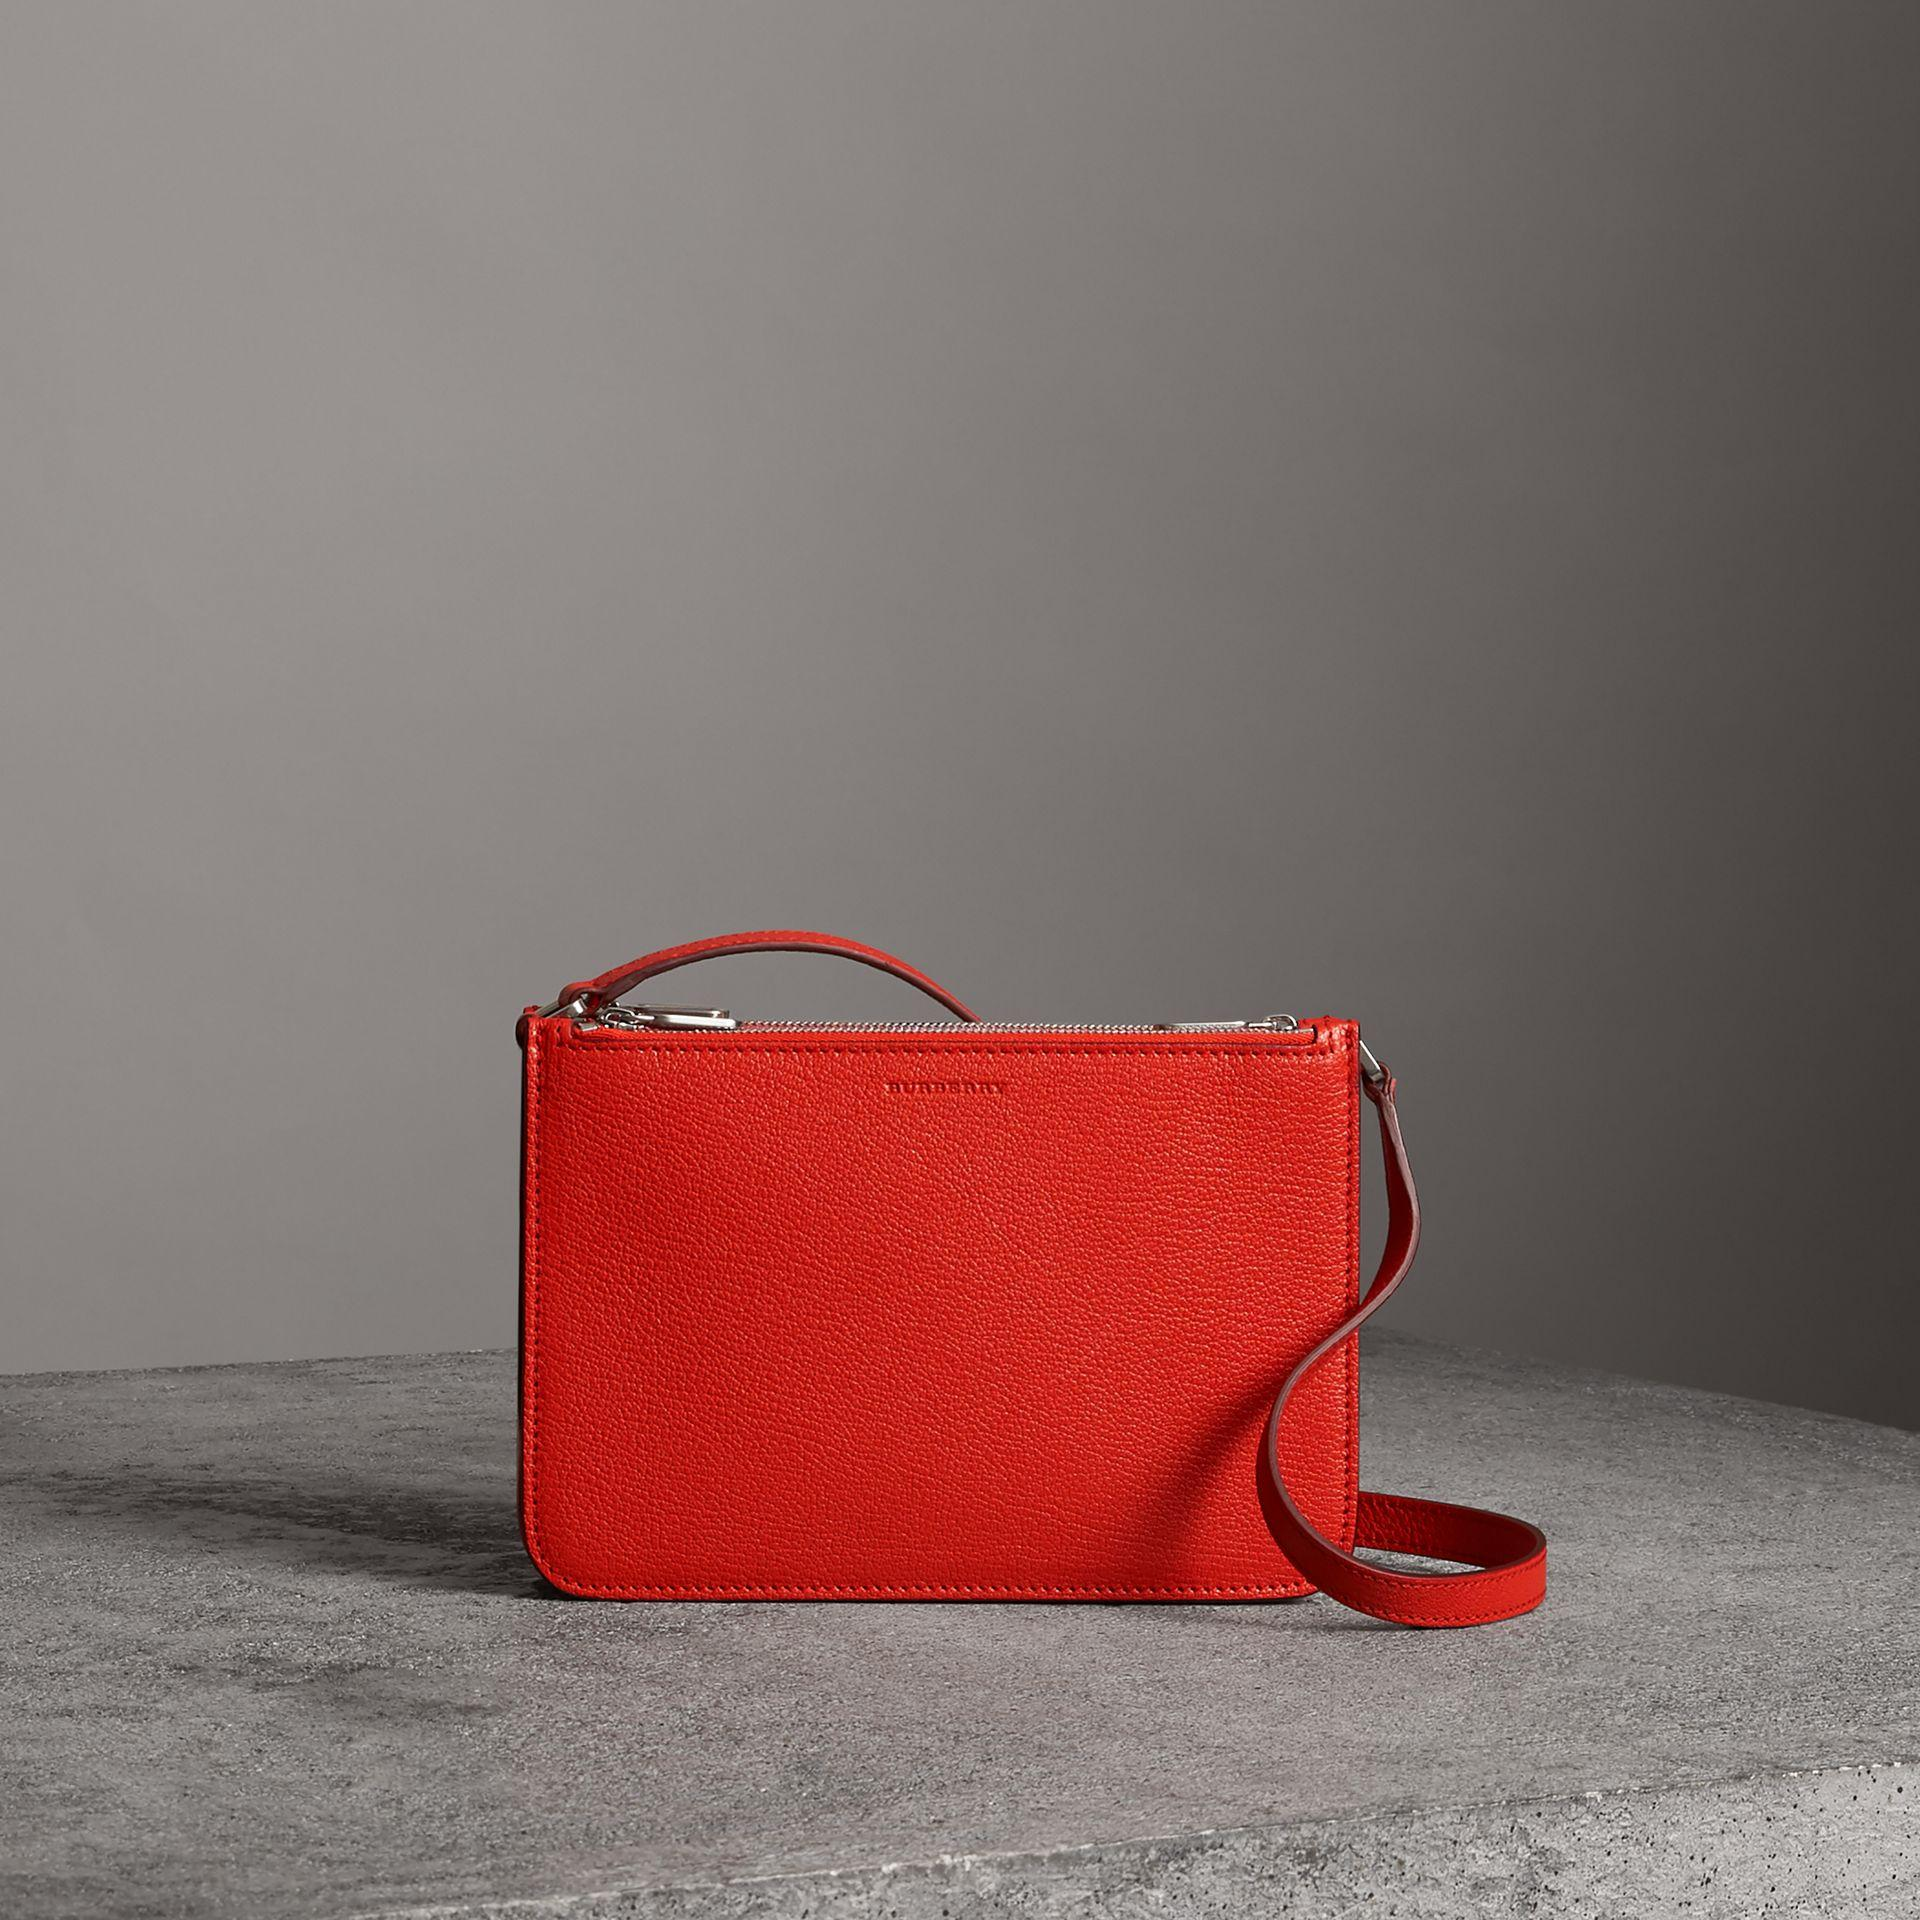 8c3260353554 Burberry Triple Zip Grainy Leather Crossbody Bag In Bright Red ...